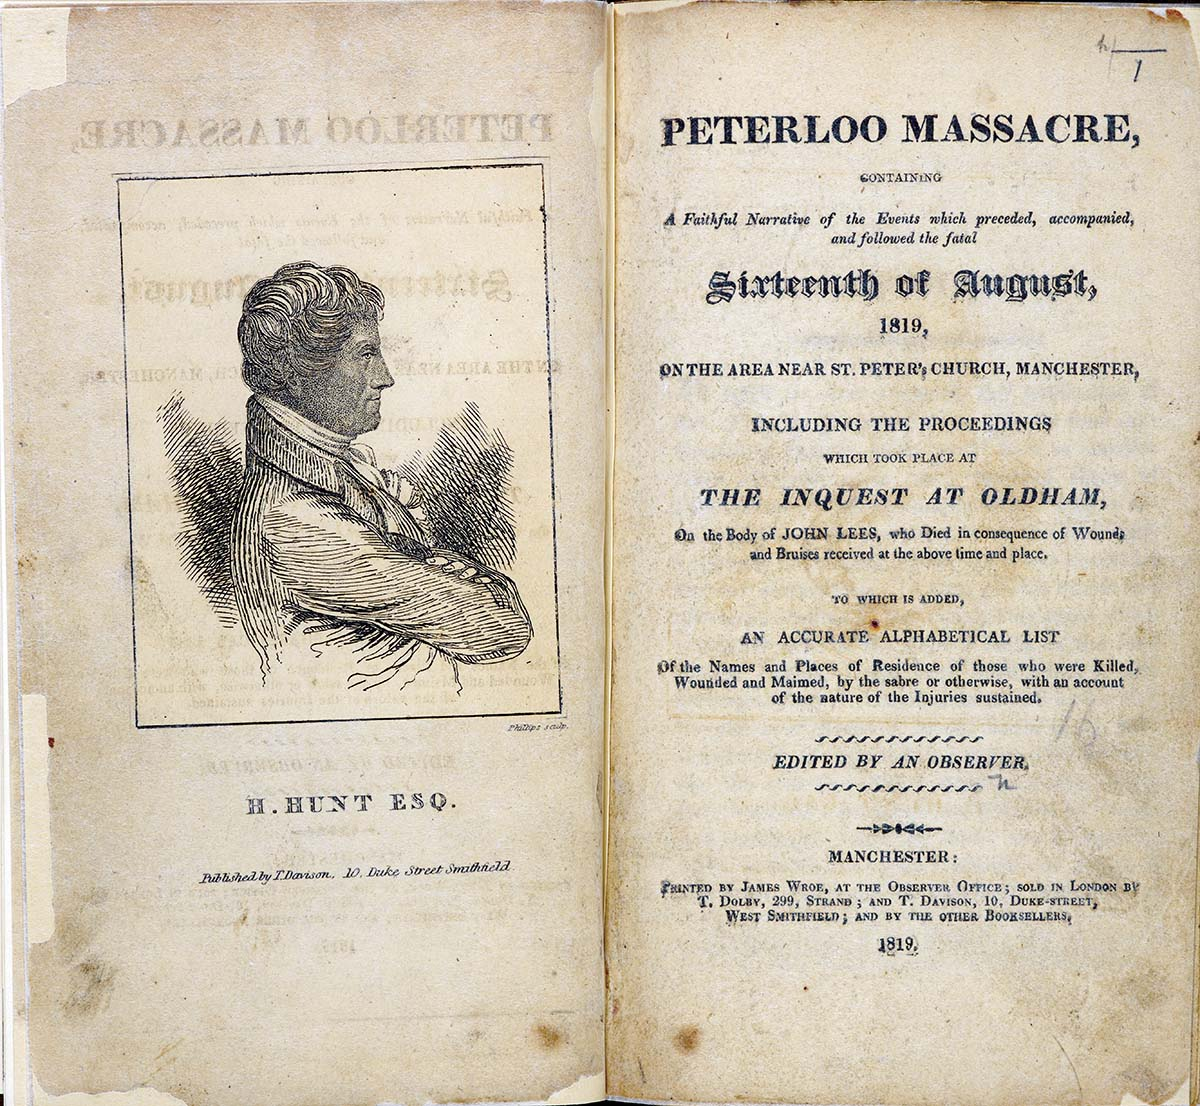 Peterloo Massacre, containing a Faithful Narrative of the Events which preceded, accompanied, and followed the fatal Sixteenth of August, 1819, edited by an observer, with a portrait of Henry Hunt, 1819 © British Library, London/Bridgeman Images